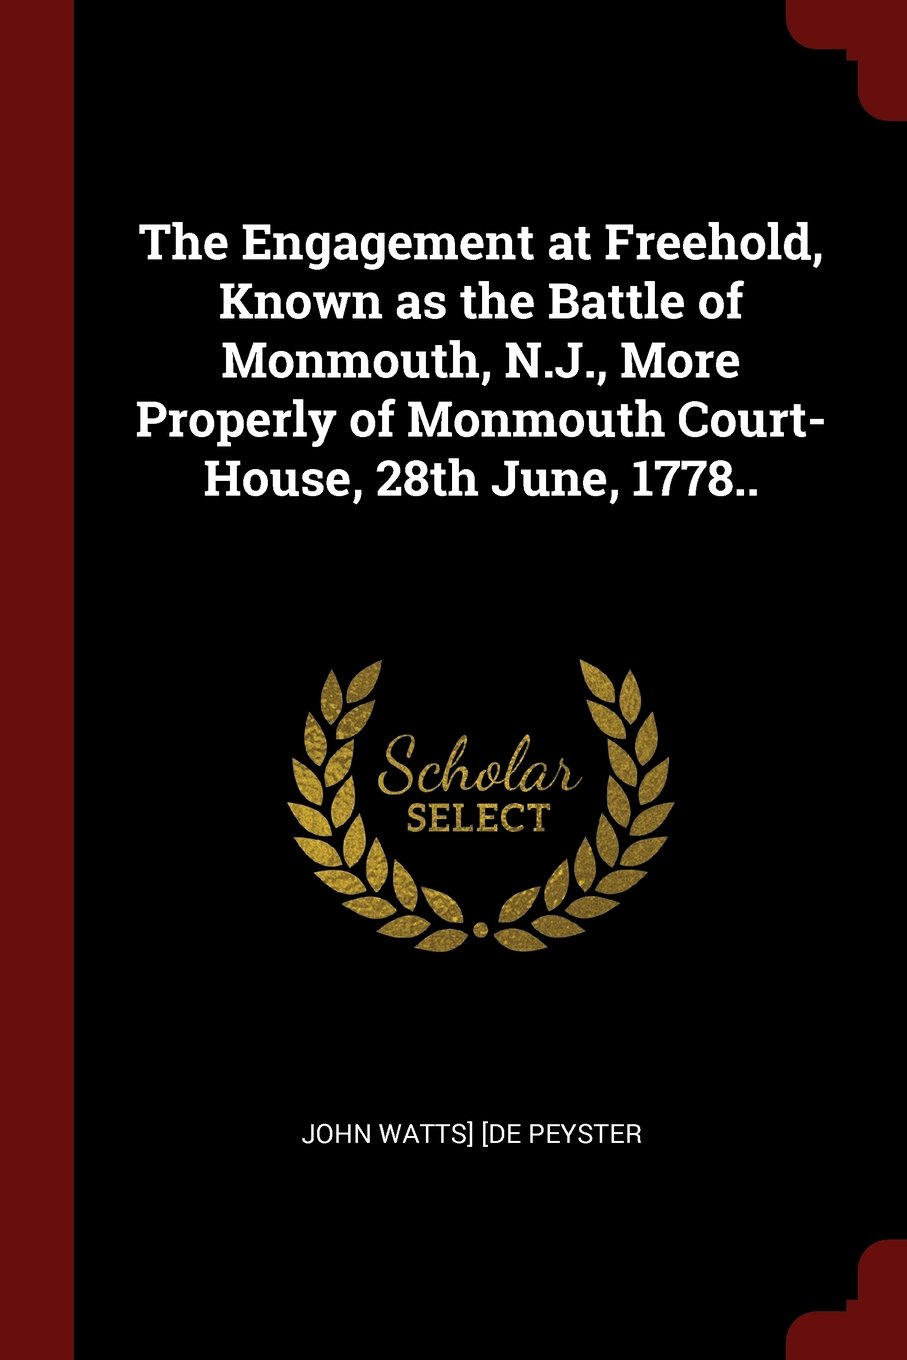 The Engagement at Freehold, Known as the Battle of Monmouth, N.J., More Properly of Monmouth Court-House, 28th June, 1778.. pdf